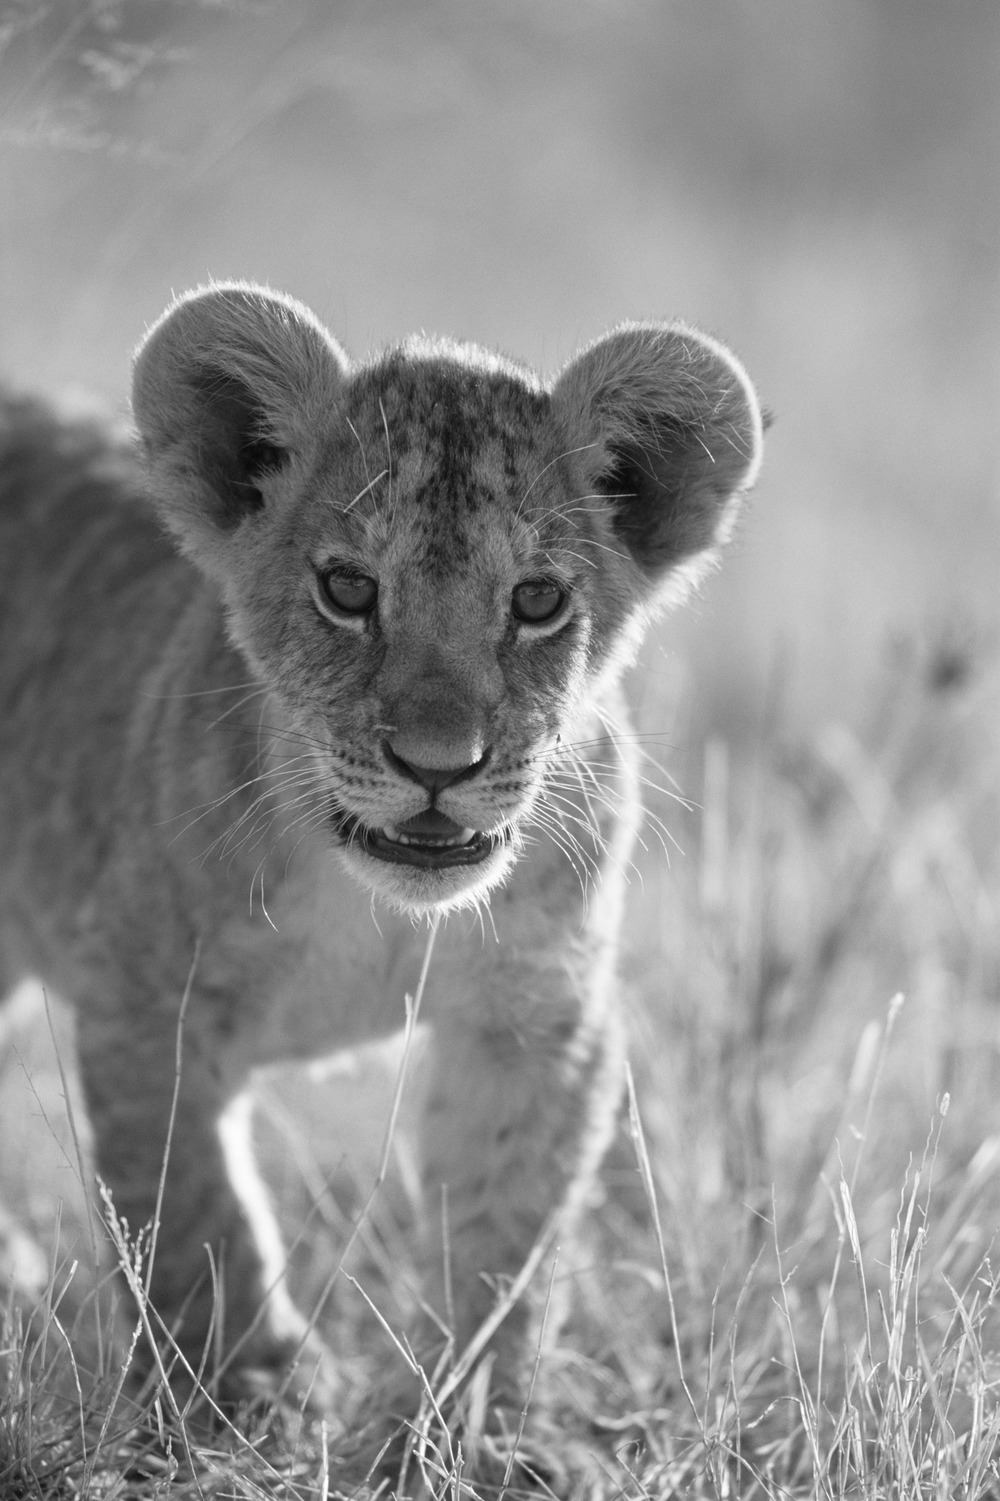 Lion cub portrait, Samburu National Reserve, Kenya